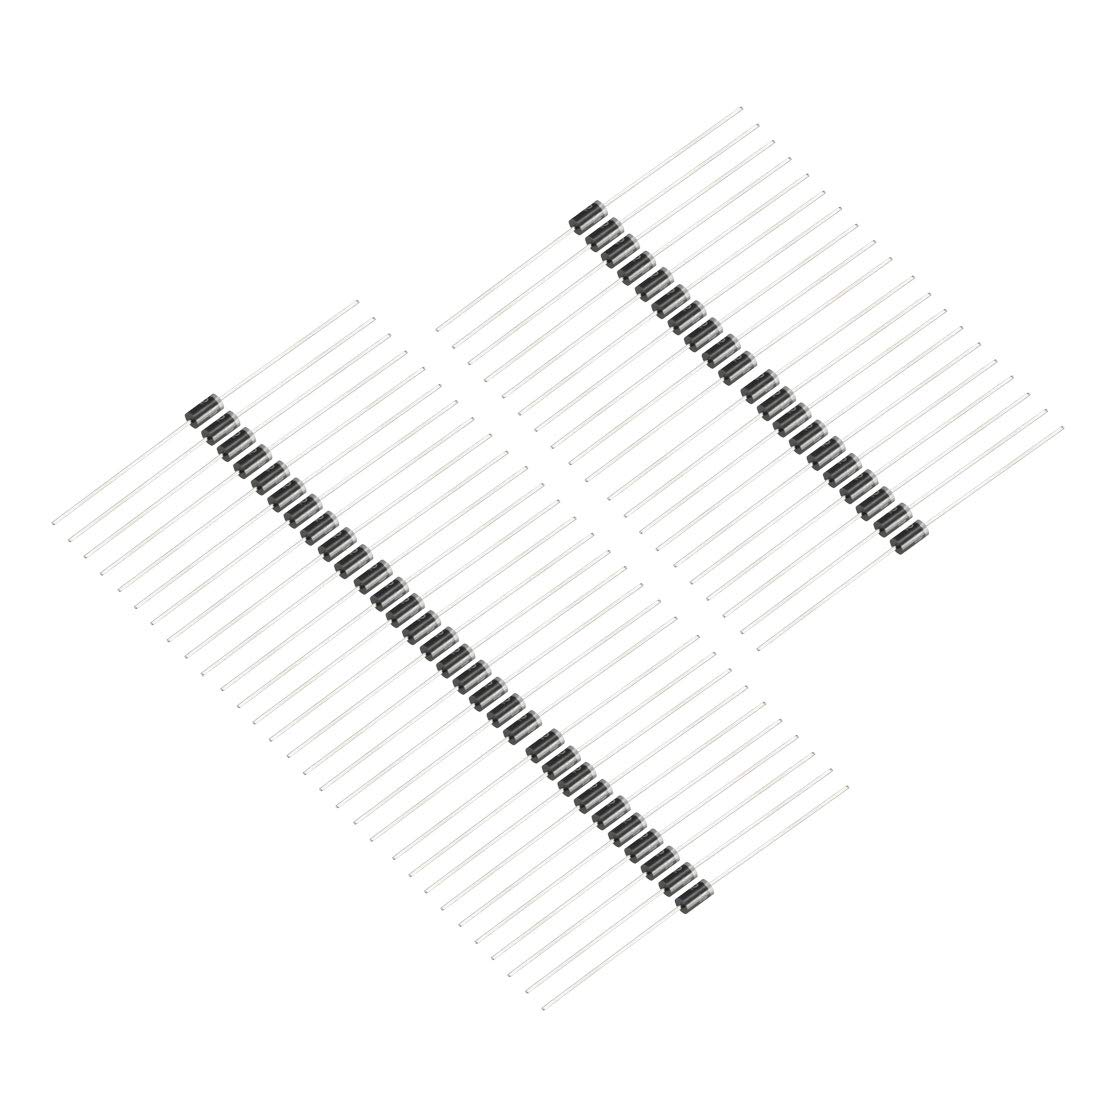 uxcell HER103 Rectifier Diode 1A 300V Axial Electronic Silicon Diodes 80pcs